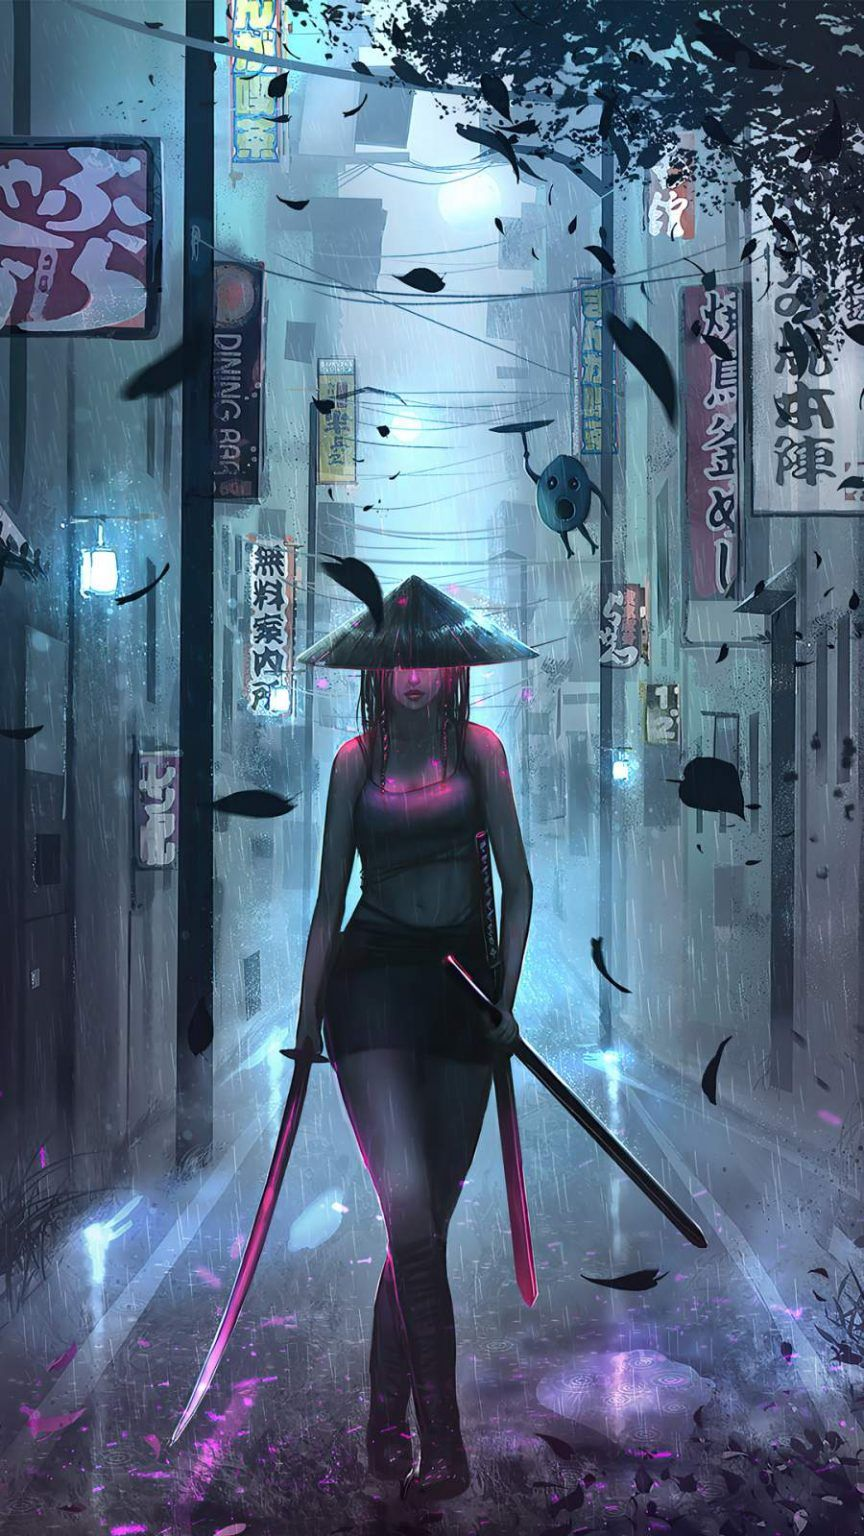 Iphone Wallpapers Wallpapers For Iphone Xs Iphone Xr And Iphone X Iphone Wallpapers Girl Iphone Wallpaper Scary Wallpaper Anime Wallpaper Iphone 12 anime wallpaper iphone